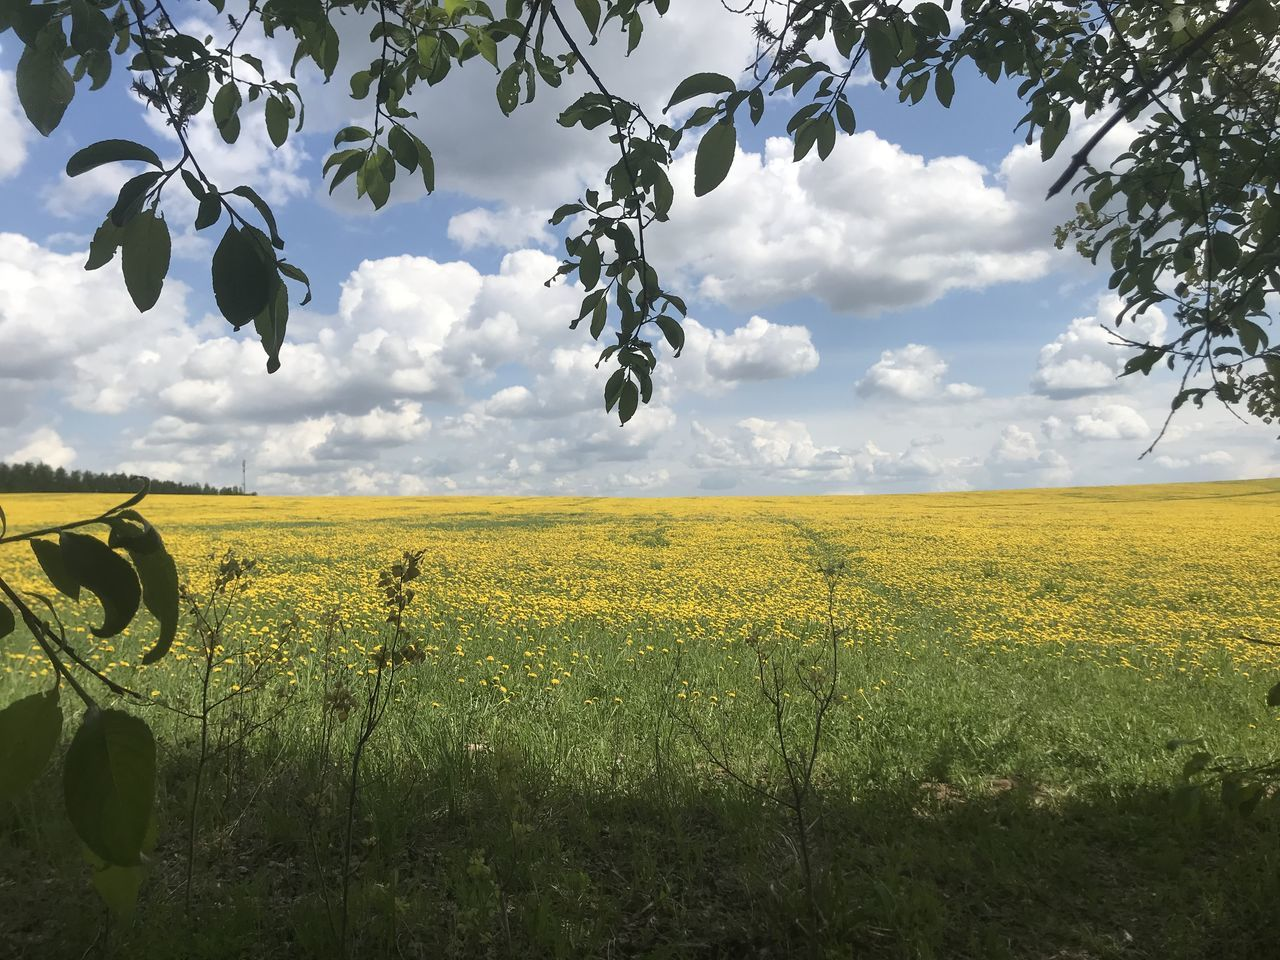 FIELD AGAINST YELLOW SKY